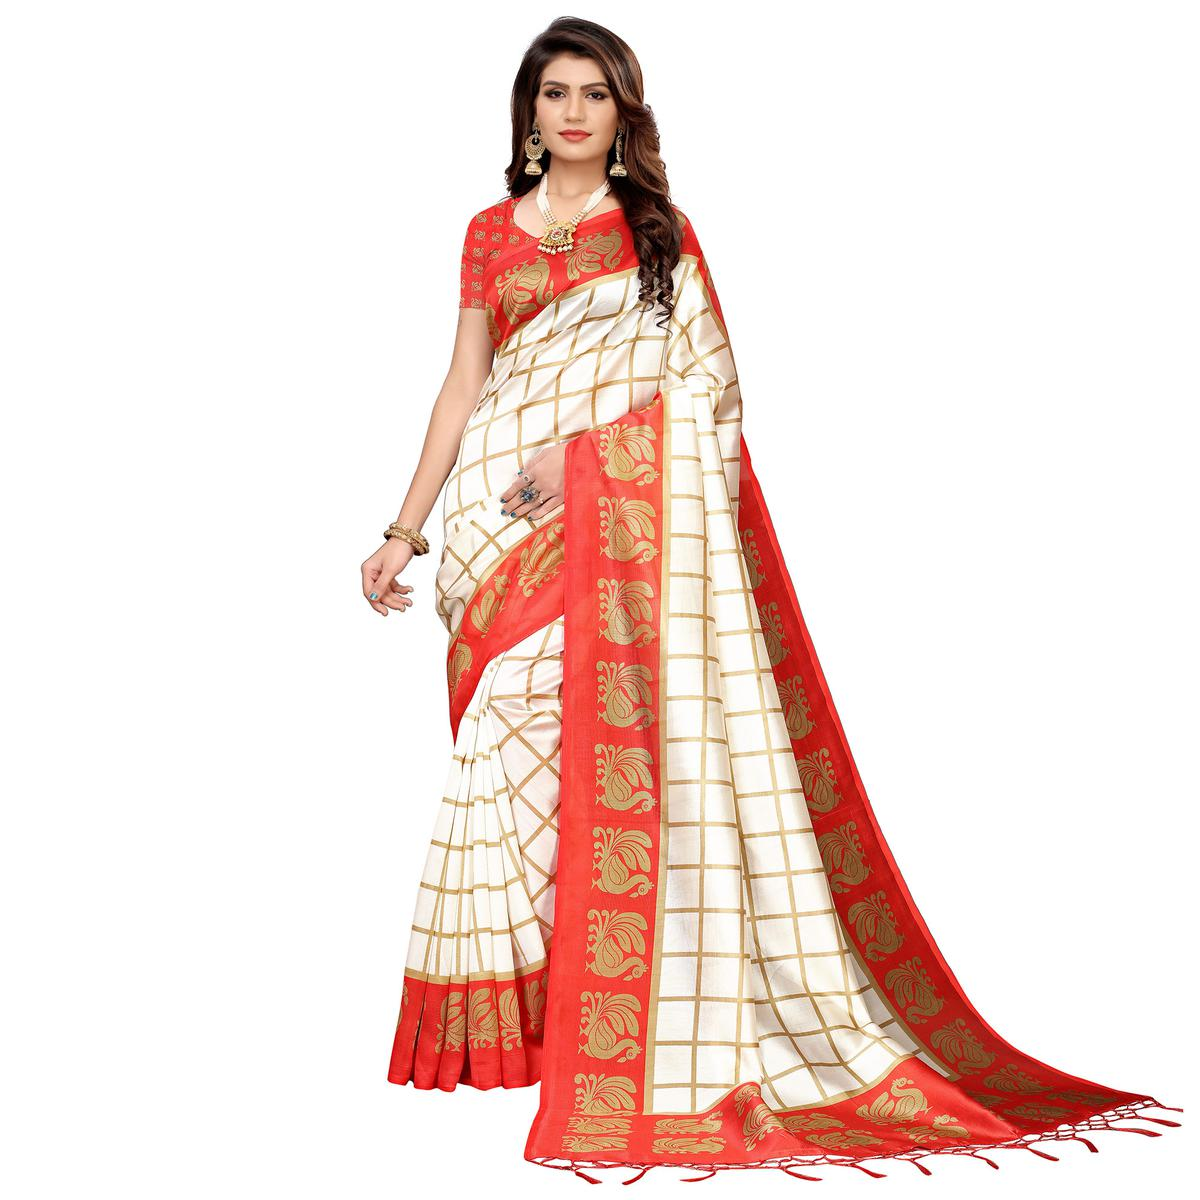 Sensational Off White-Red Colored Festive Wear Art Silk Saree